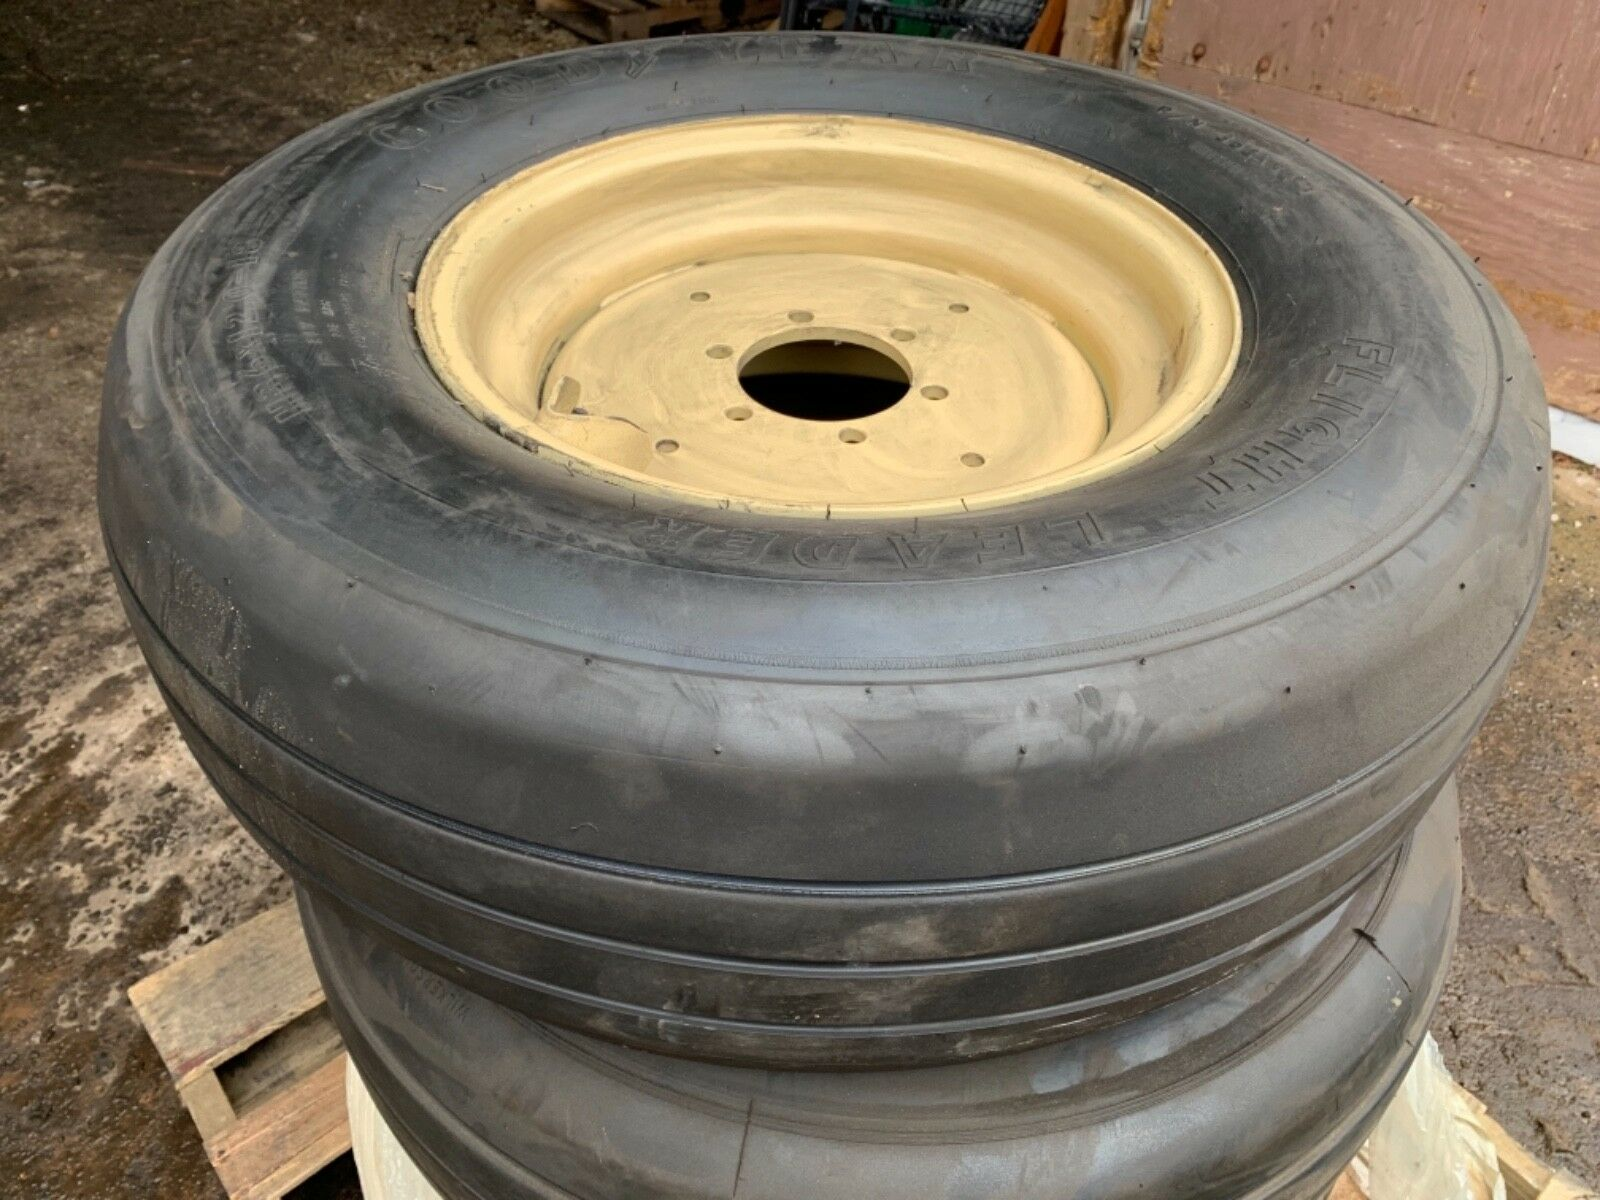 Set Of Four Goodyear 362K82-1 Flight Leader H36x12.0-18-18 225 Aircraft tires